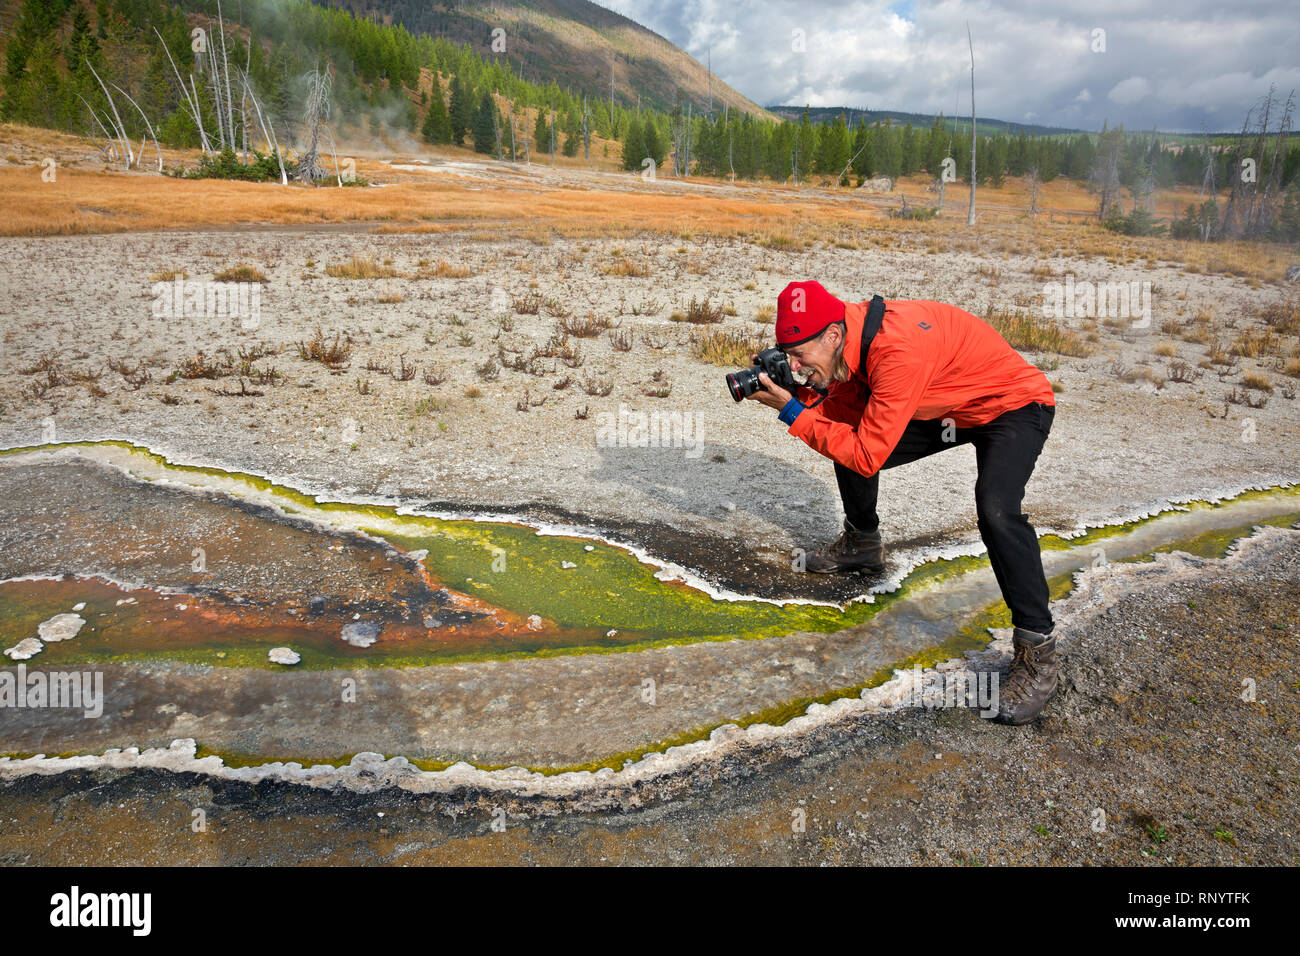 WY03836-00...WYOMING - Tom Kirkendall photographing the runoff from a hot spring in the Rustic Group area of the Heart Lake Thermal Area in the backco - Stock Image